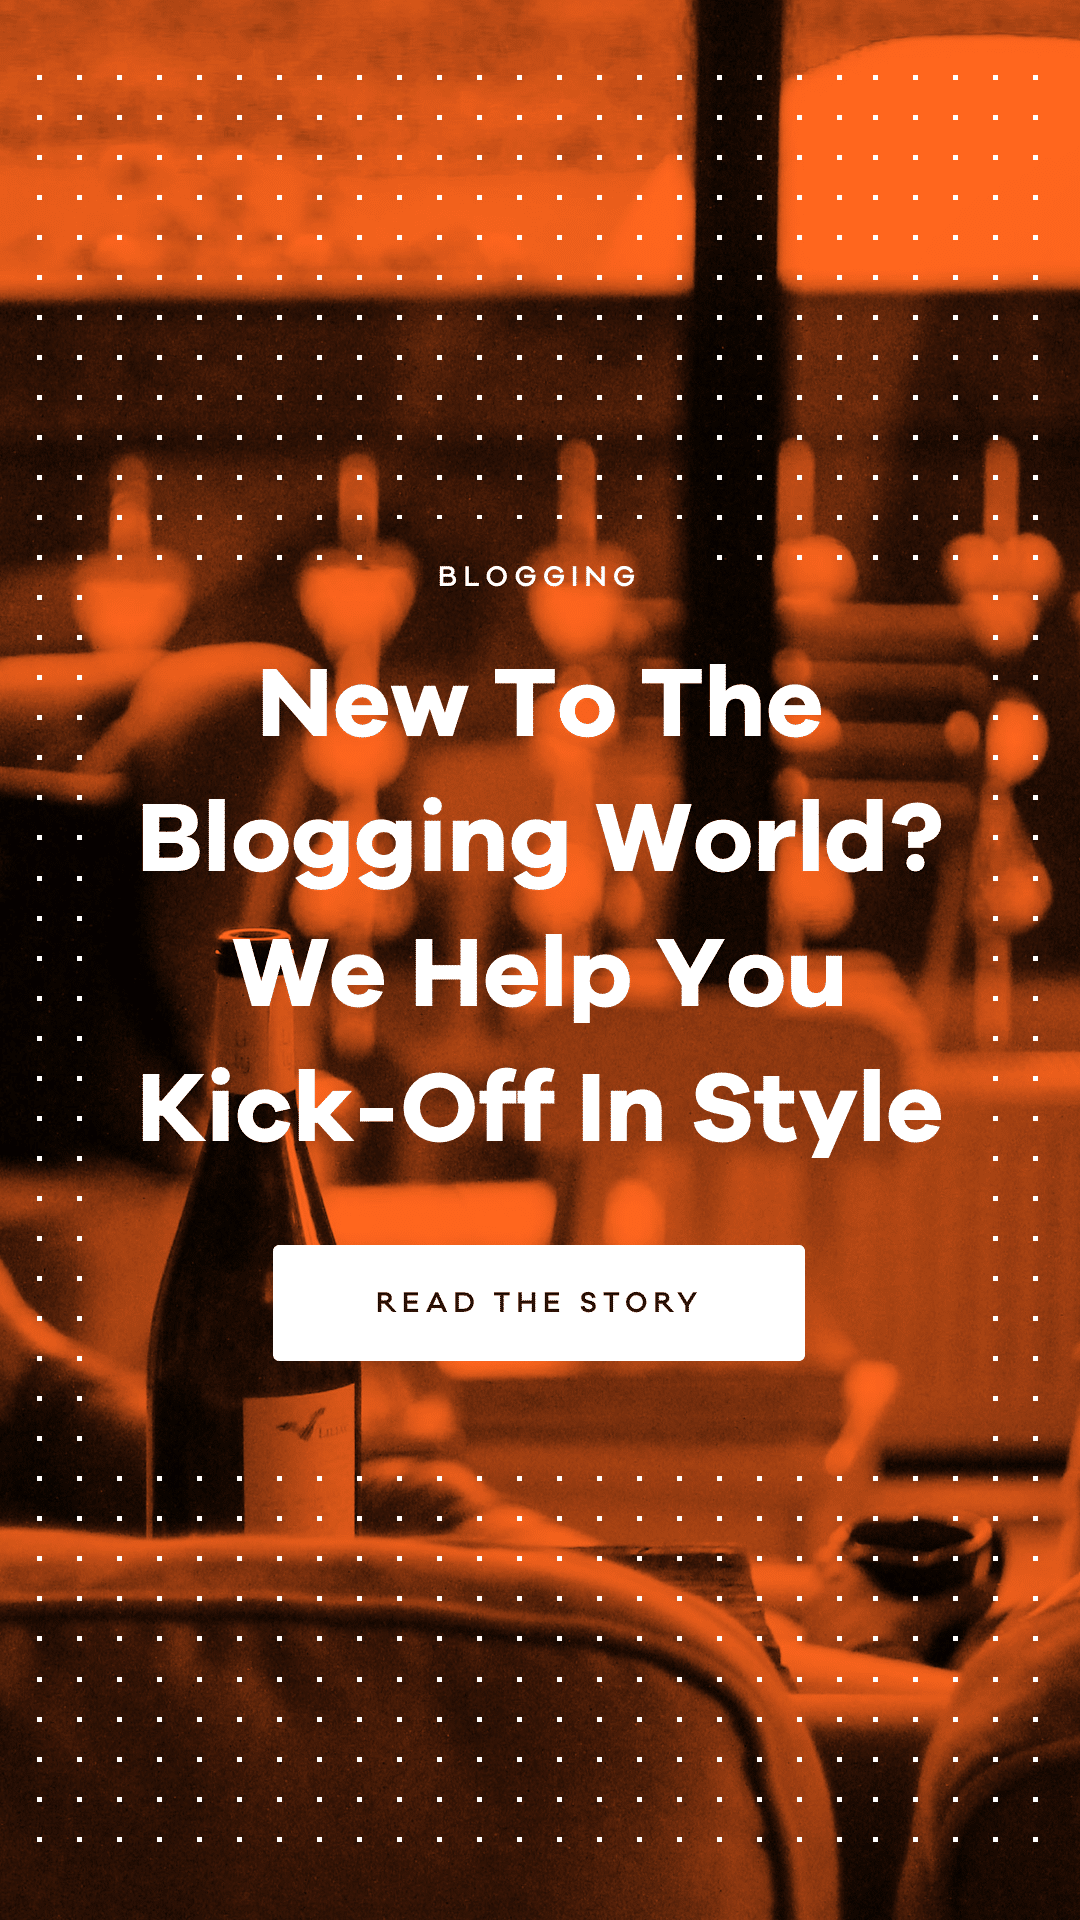 Start your blog in style by joining Pixelgrade Club. You get access to our growing collection of the best blogging WordPress themes out there.